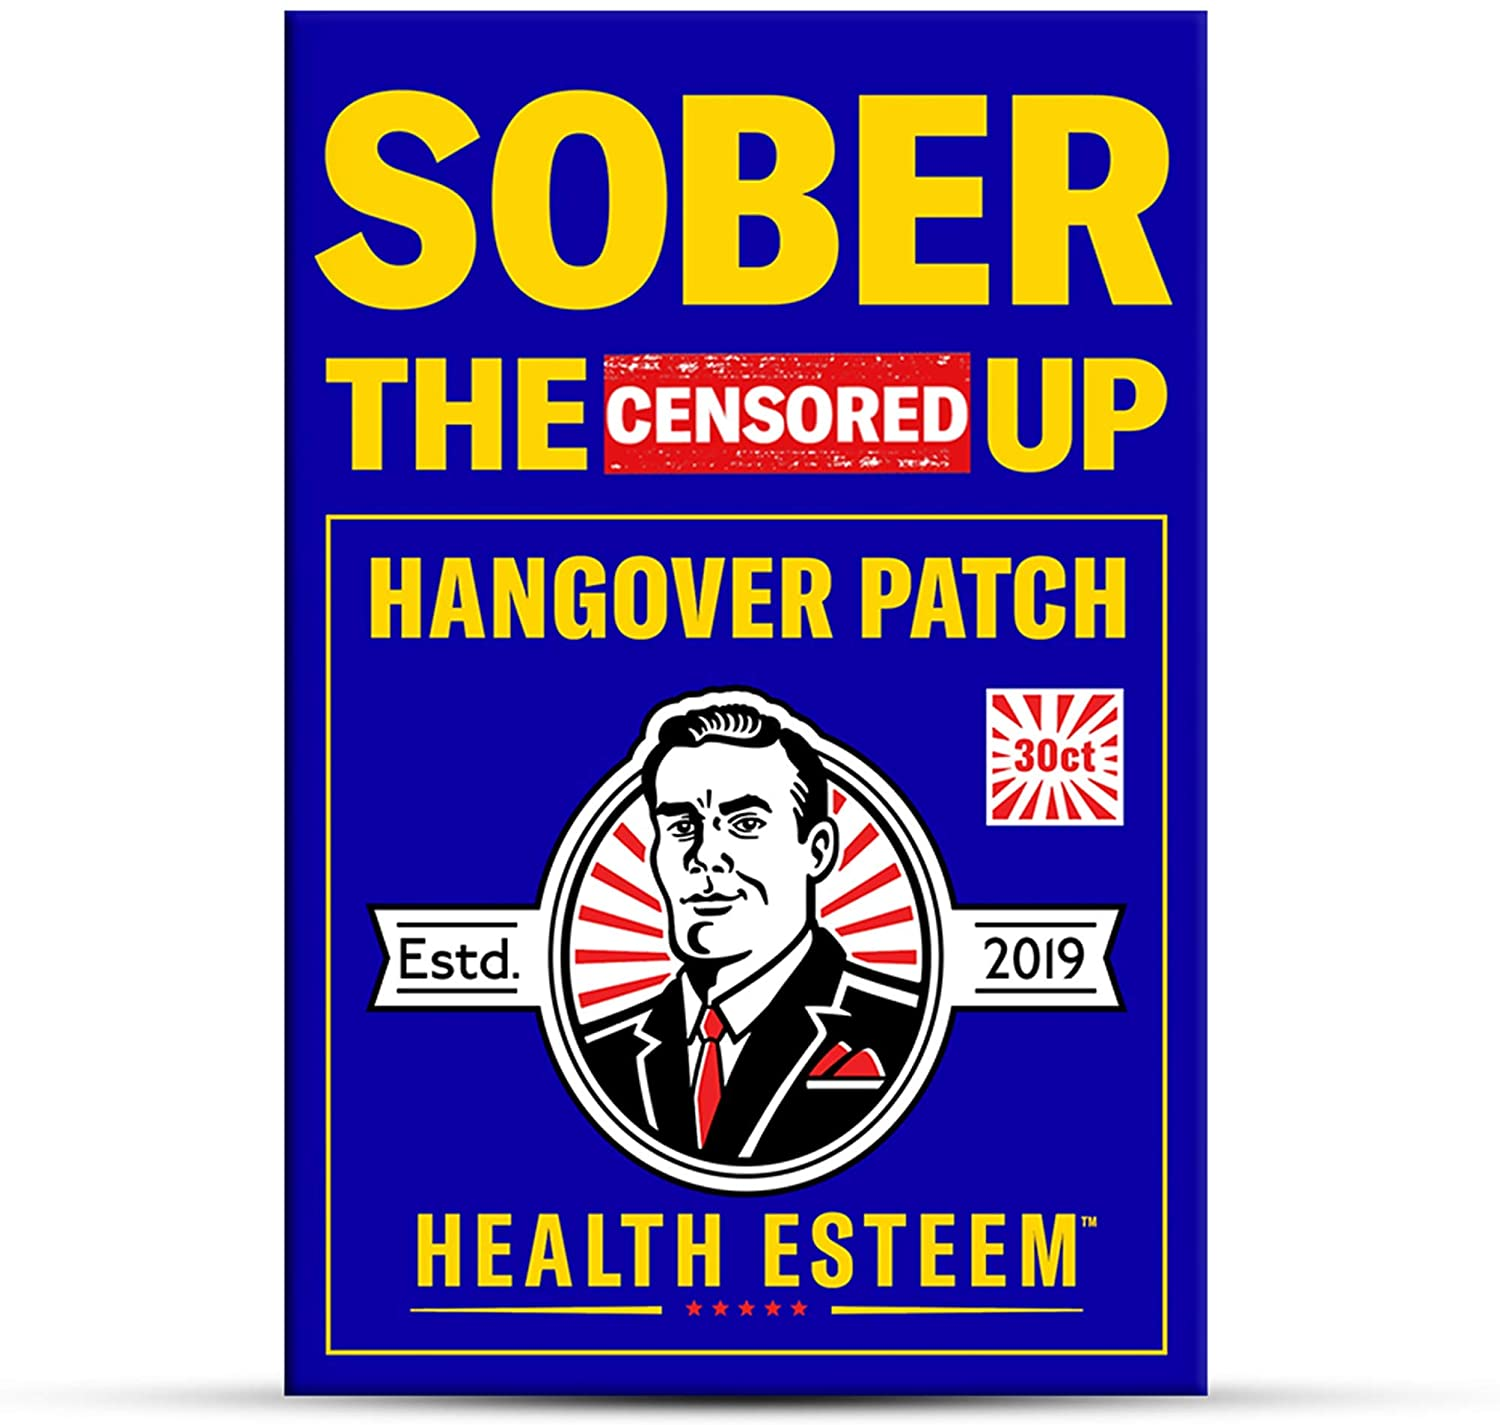 Hangover Patch for Hangover Cure & Hangover Prevention (30 Hangover Patches)   Hangover Kit Supplies Alternative to Hangover Pills & Hangover Drinks   Sober The (Censored) Up by Health Esteem